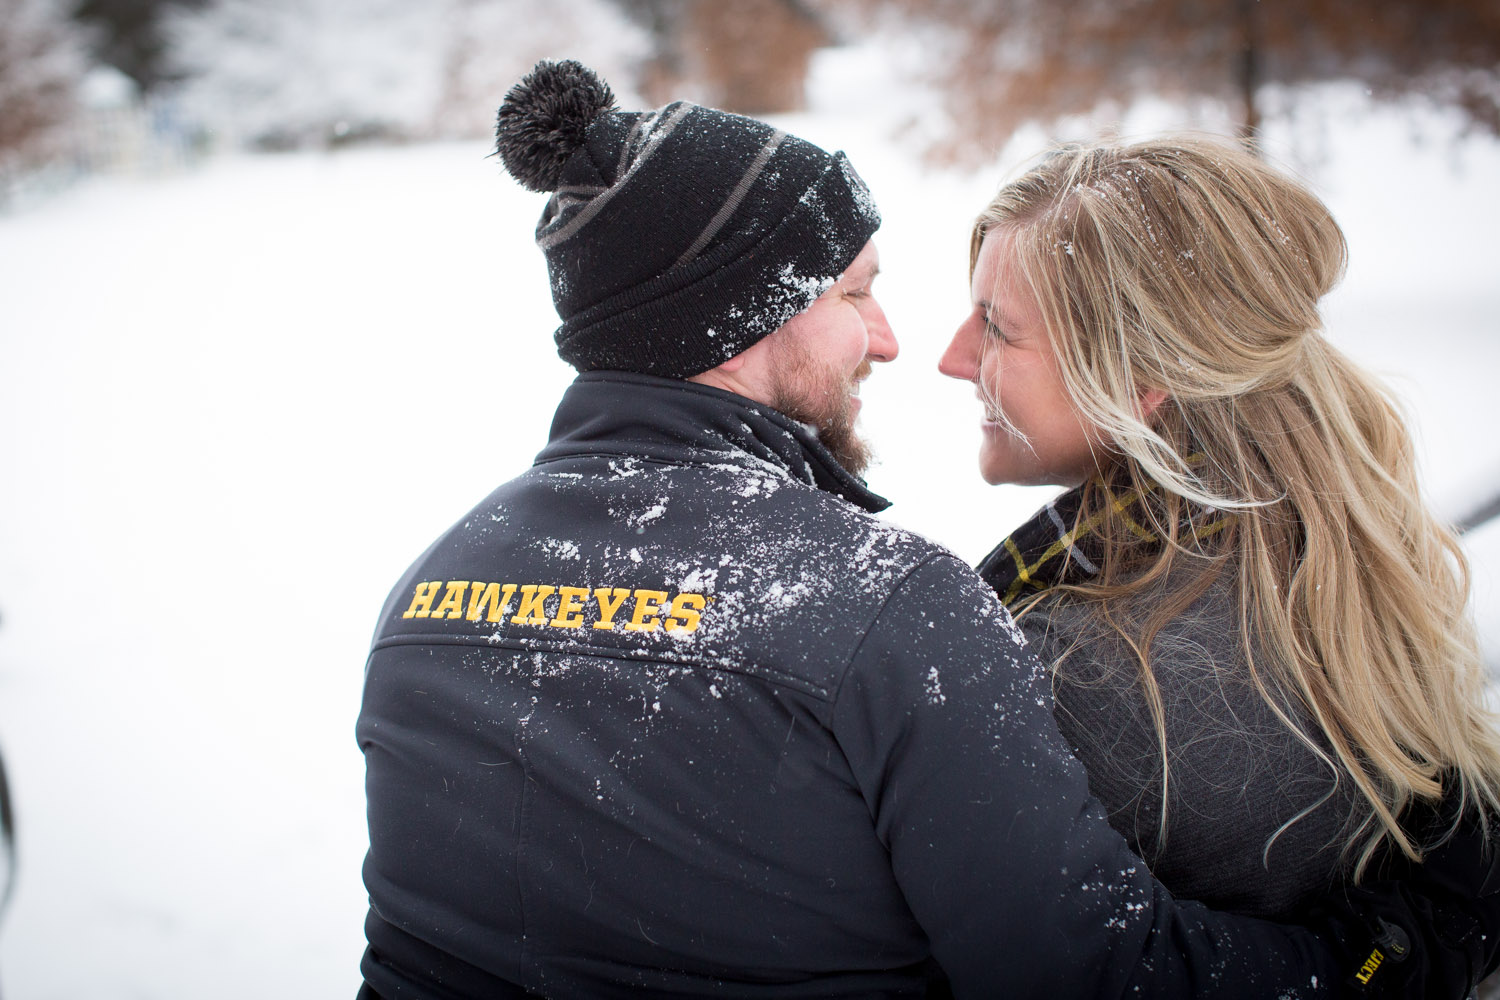 09-bunker-hill-regional-park-winter-wonderland-minnesota-engagement-photographer-snowy-day-snow-field-hawkeye-fans-fun-photo-session-mahonen-photography.jpg